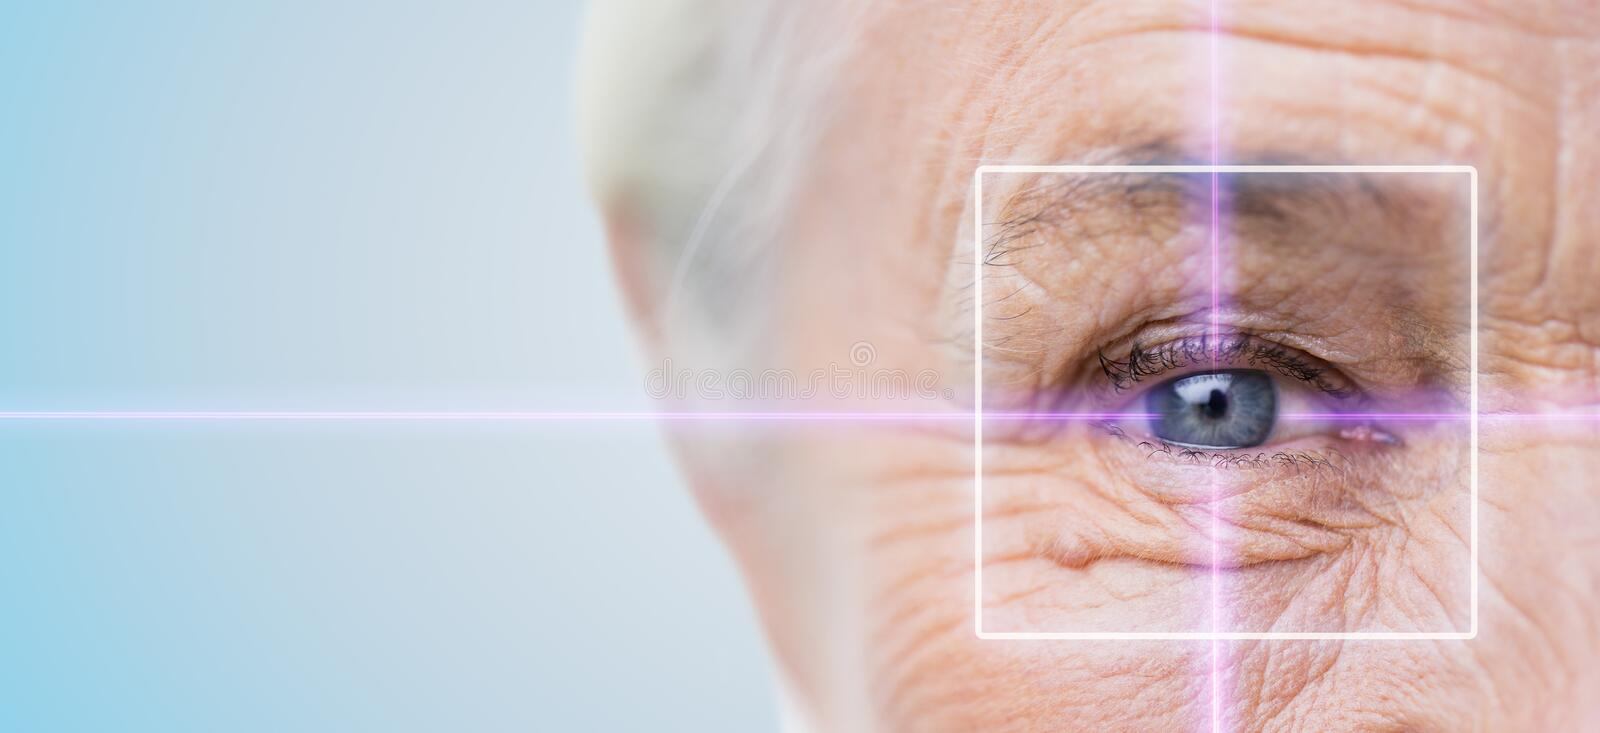 Close up of senior woman eye with laser light. Age, vision, surgery, eyesight and people concept - close up of senior woman face and eye with laser light royalty free stock images